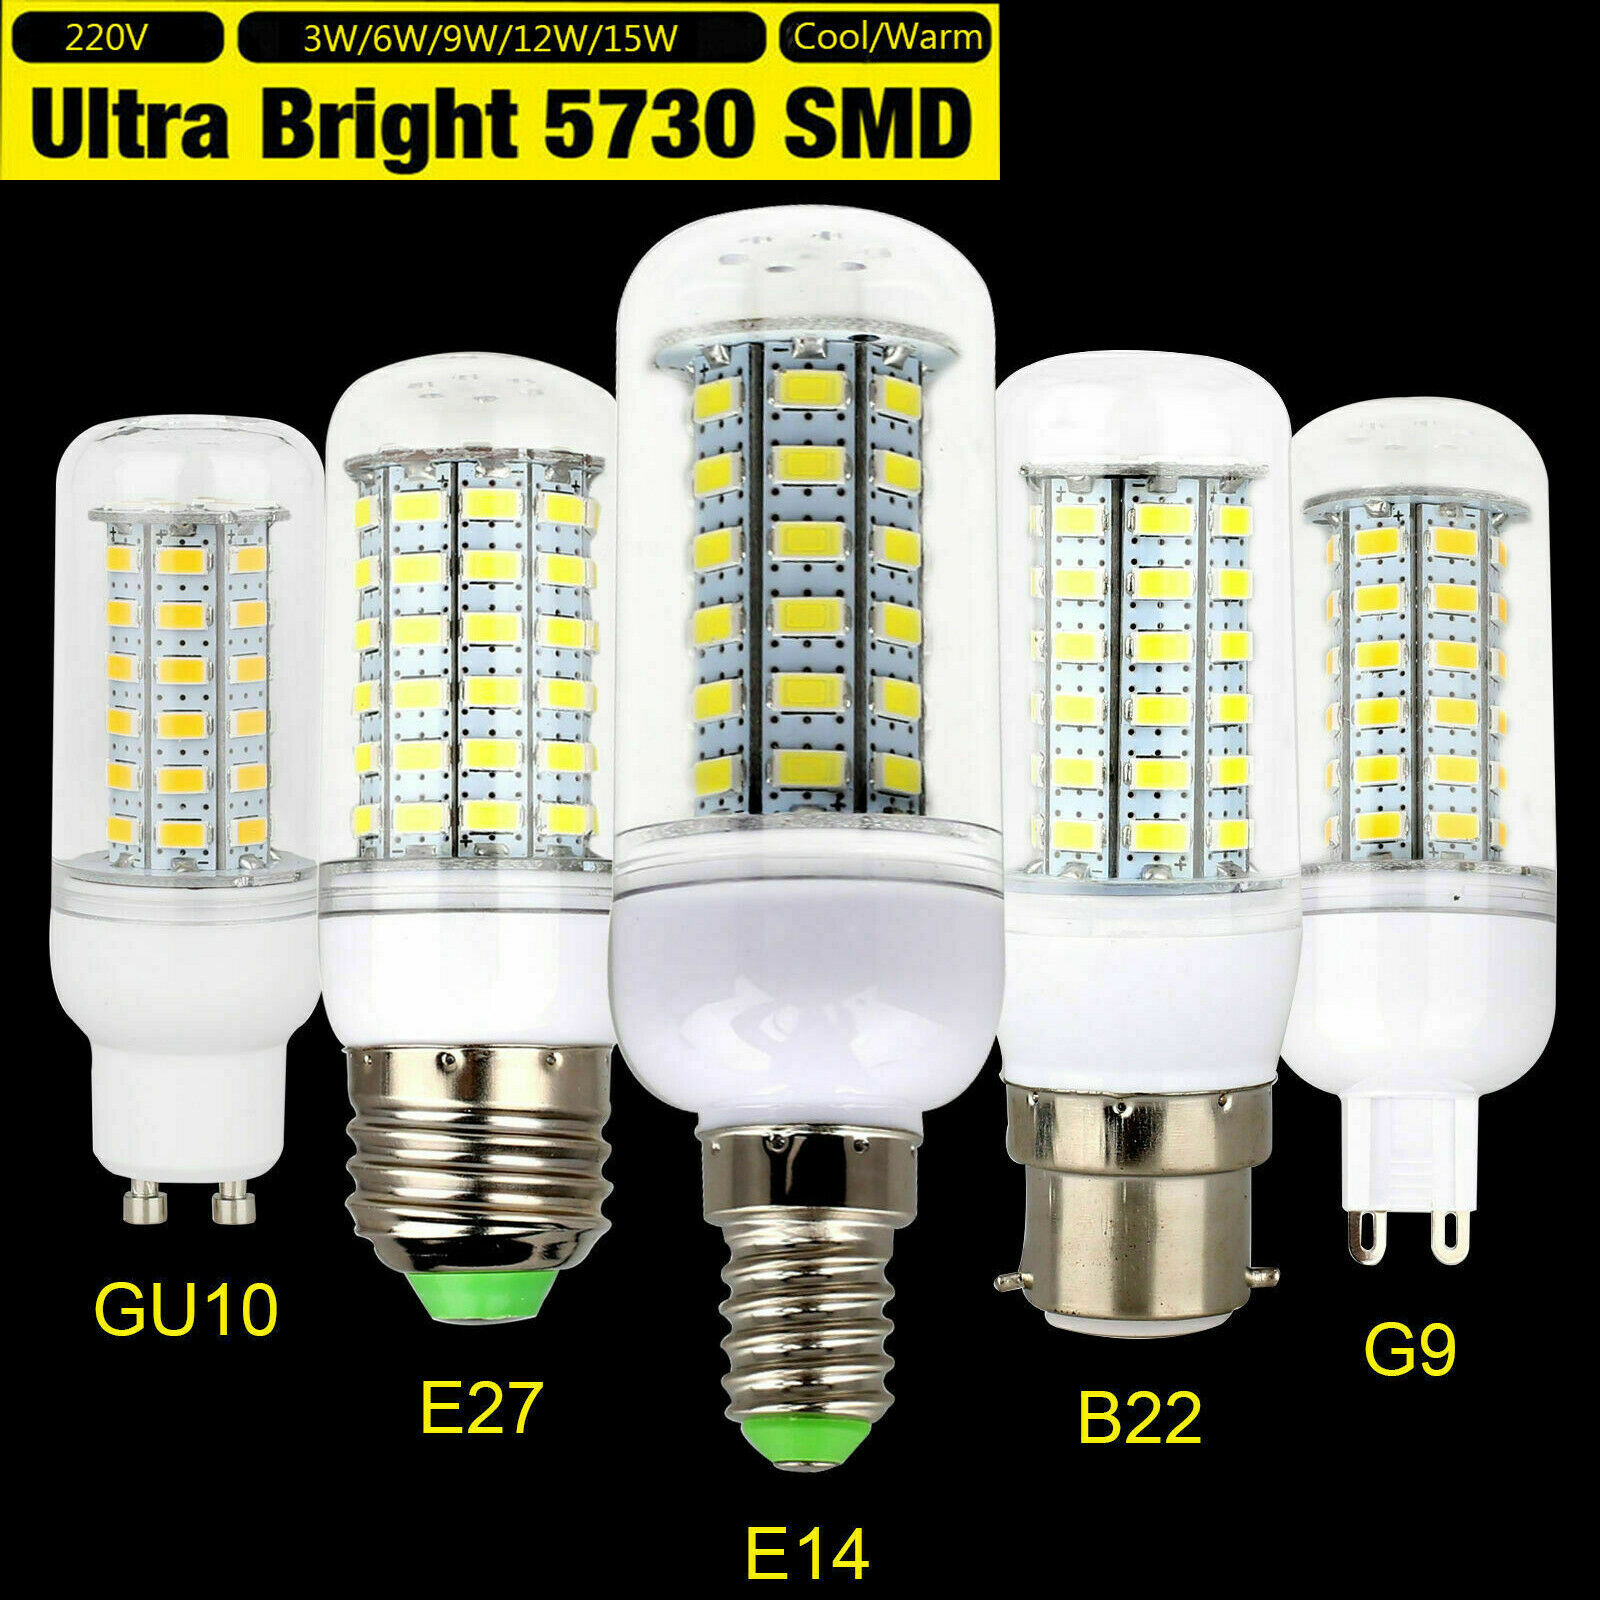 <font><b>3W</b></font> 6W 9W 12W 15W LED Corn Light Bulbs E14 E27 B22 G9 GU10 5730 SMD Bright Cool Warm White Lamp <font><b>220V</b></font> 110V for Home Office Ampoule image